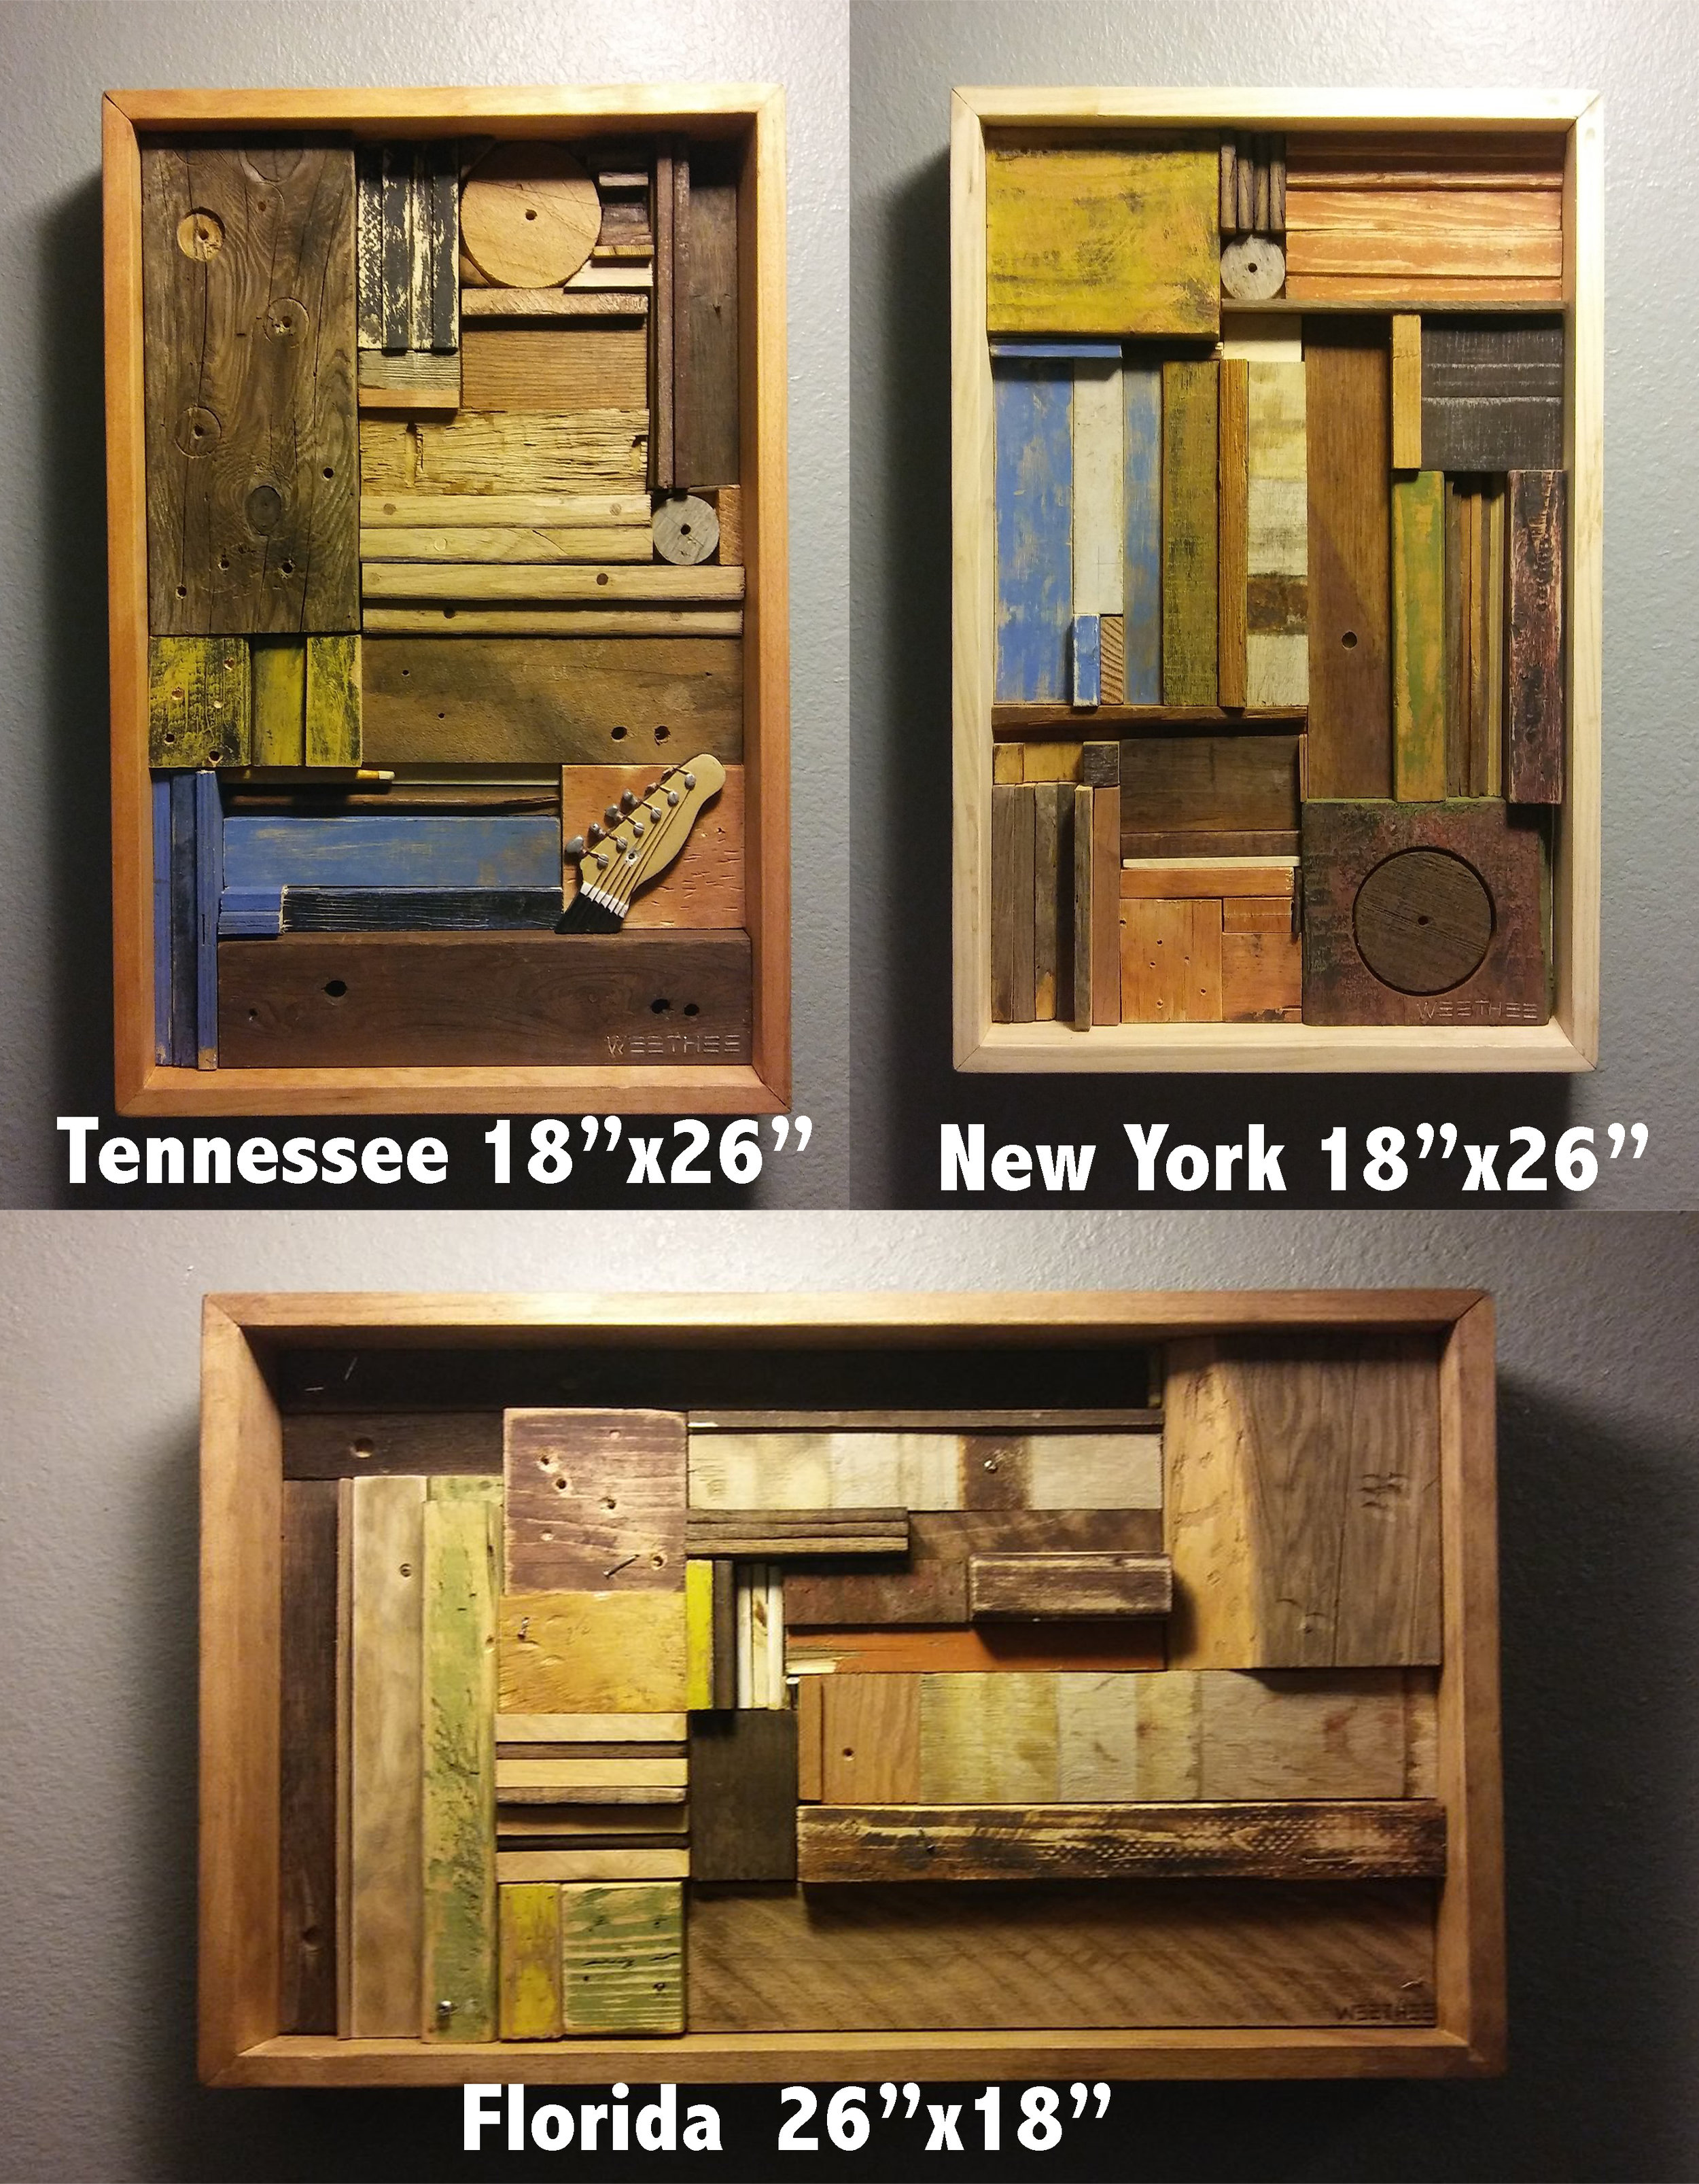 Here is a peak at some of our mixed media art for rent